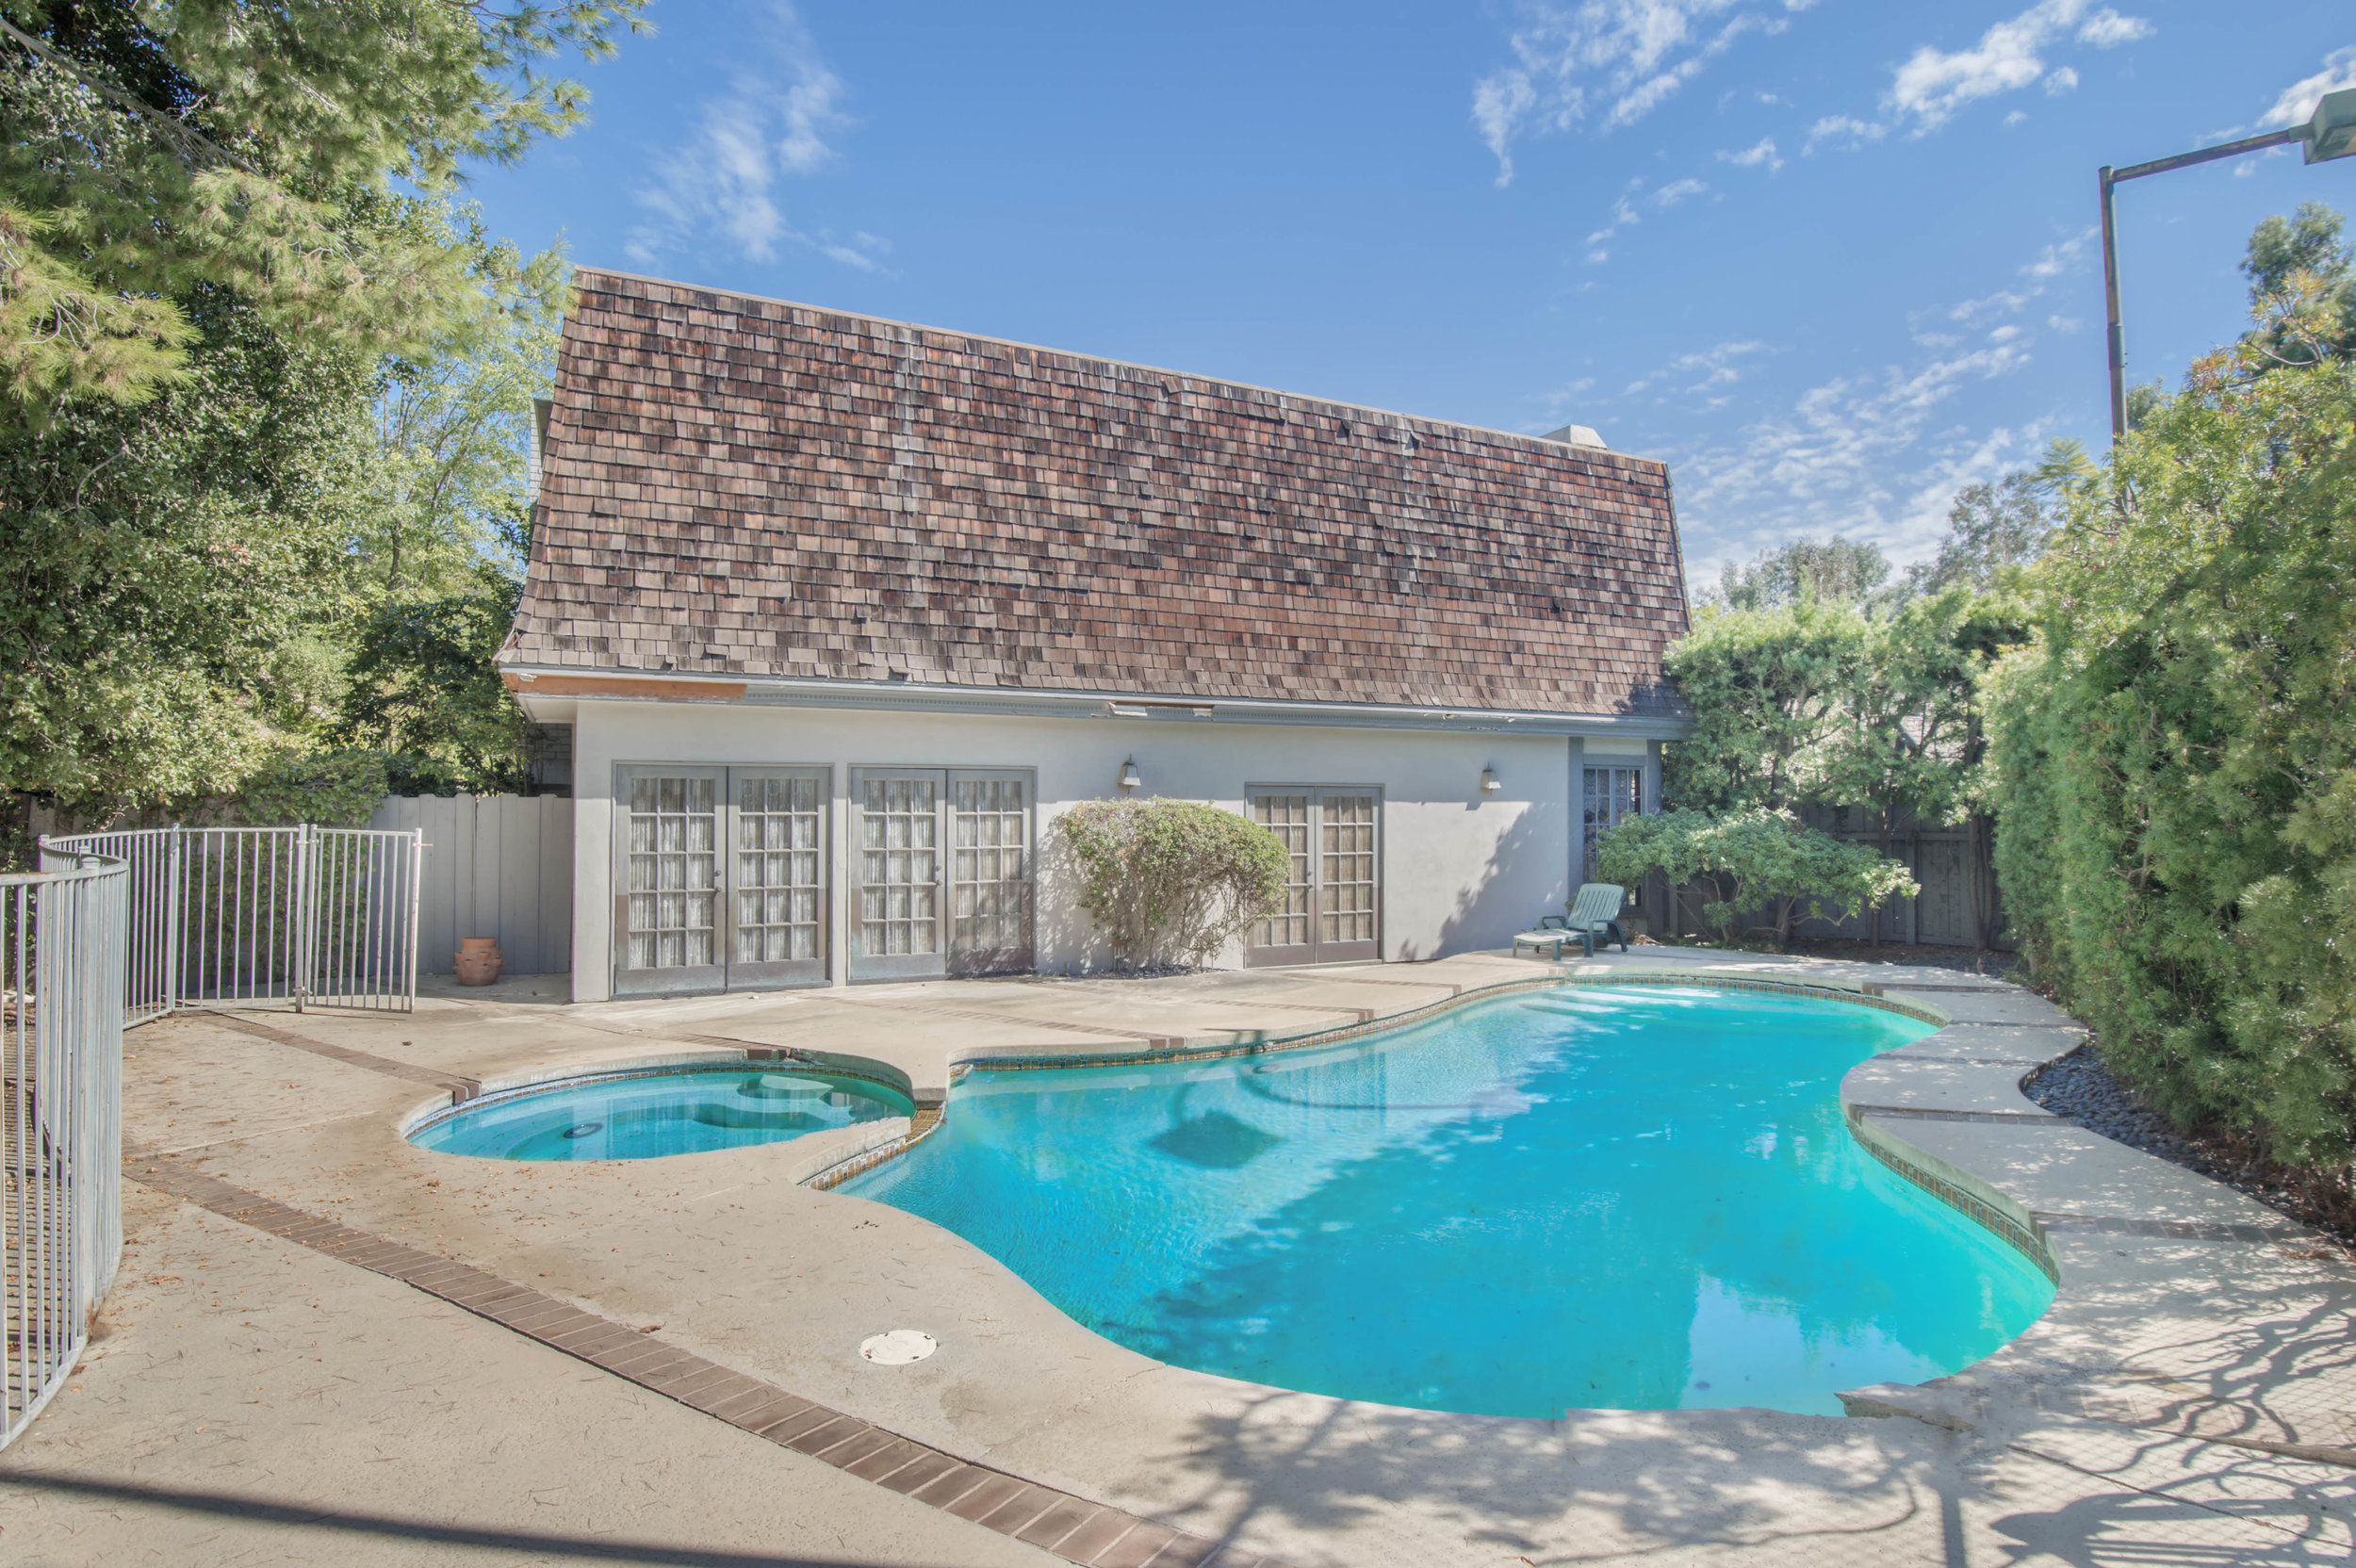 005 Pool 3191 Toppington Drive Beverly Hills For Sale Lease The Malibu Life Team Luxury Real Estate.jpg